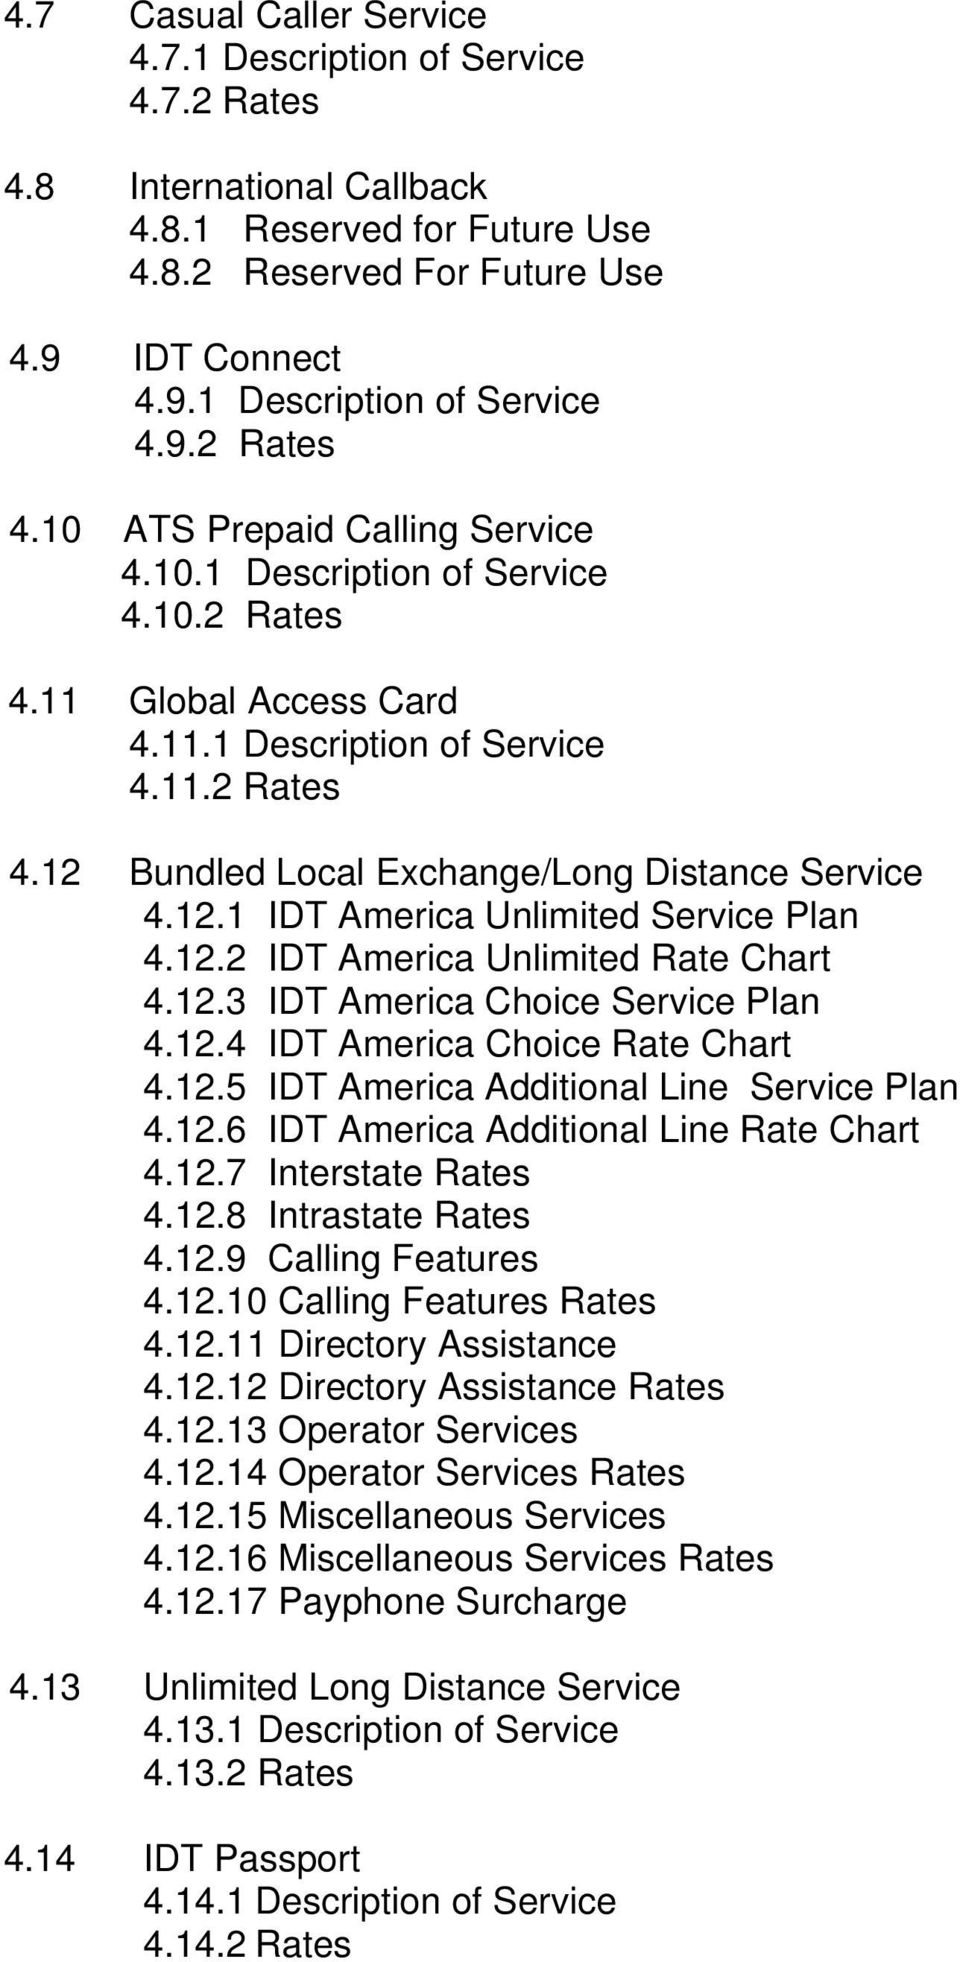 12.2 IDT America Unlimited Rate Chart 4.12.3 IDT America Choice Service Plan 4.12.4 IDT America Choice Rate Chart 4.12.5 IDT America Additional Line Service Plan 4.12.6 IDT America Additional Line Rate Chart 4.